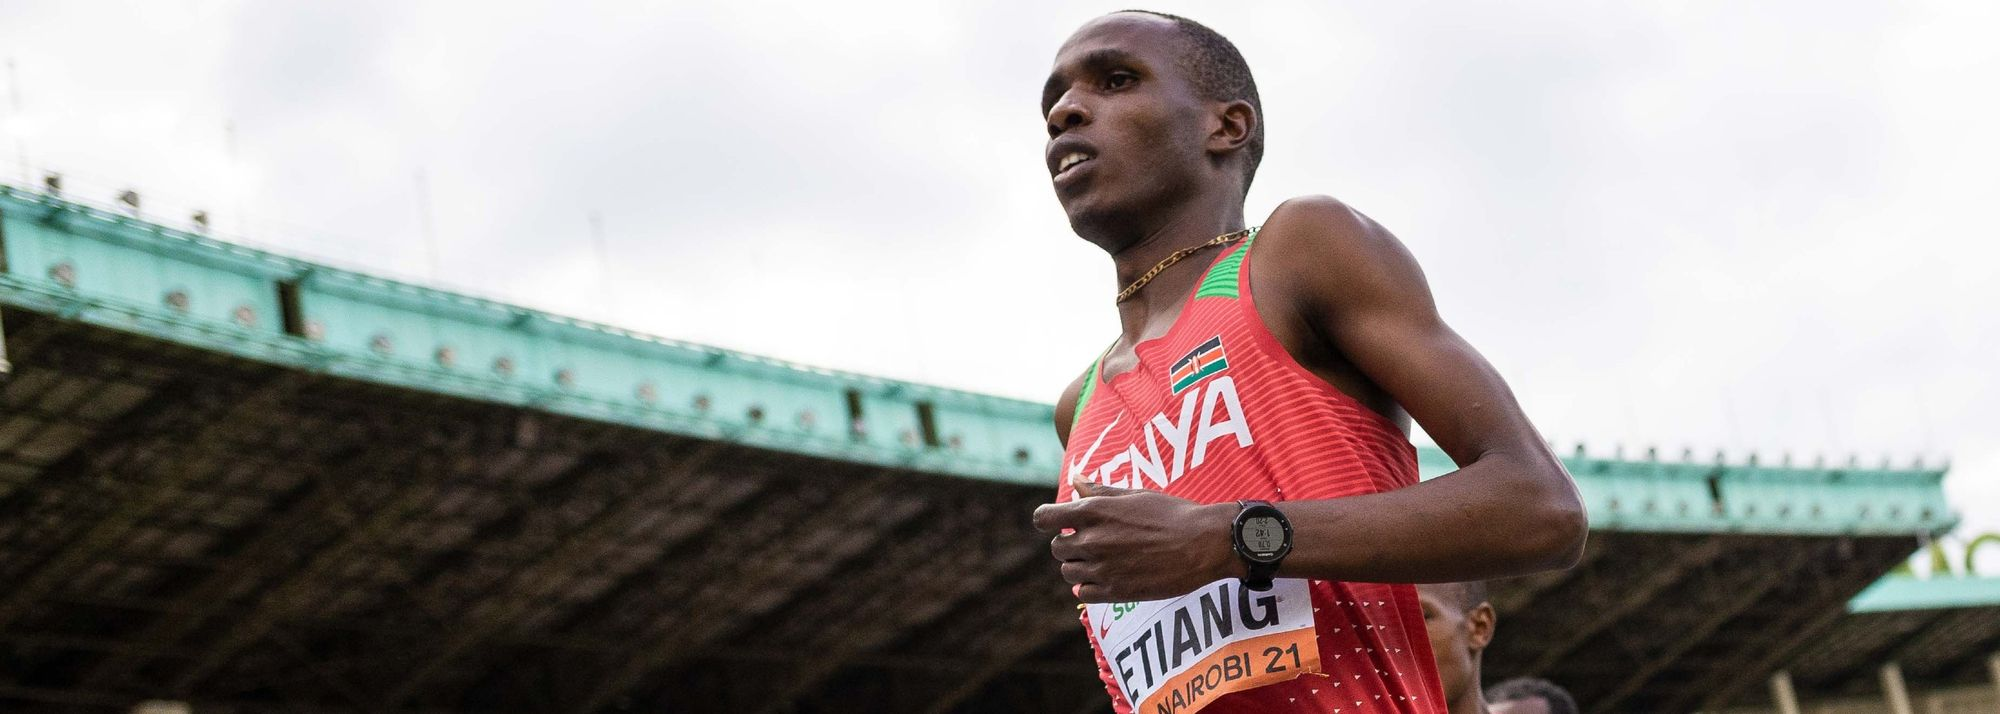 Ask Kamar Etiang his goals for the future and the Kenyan 18-year-old isn't shy about making a bold prediction.